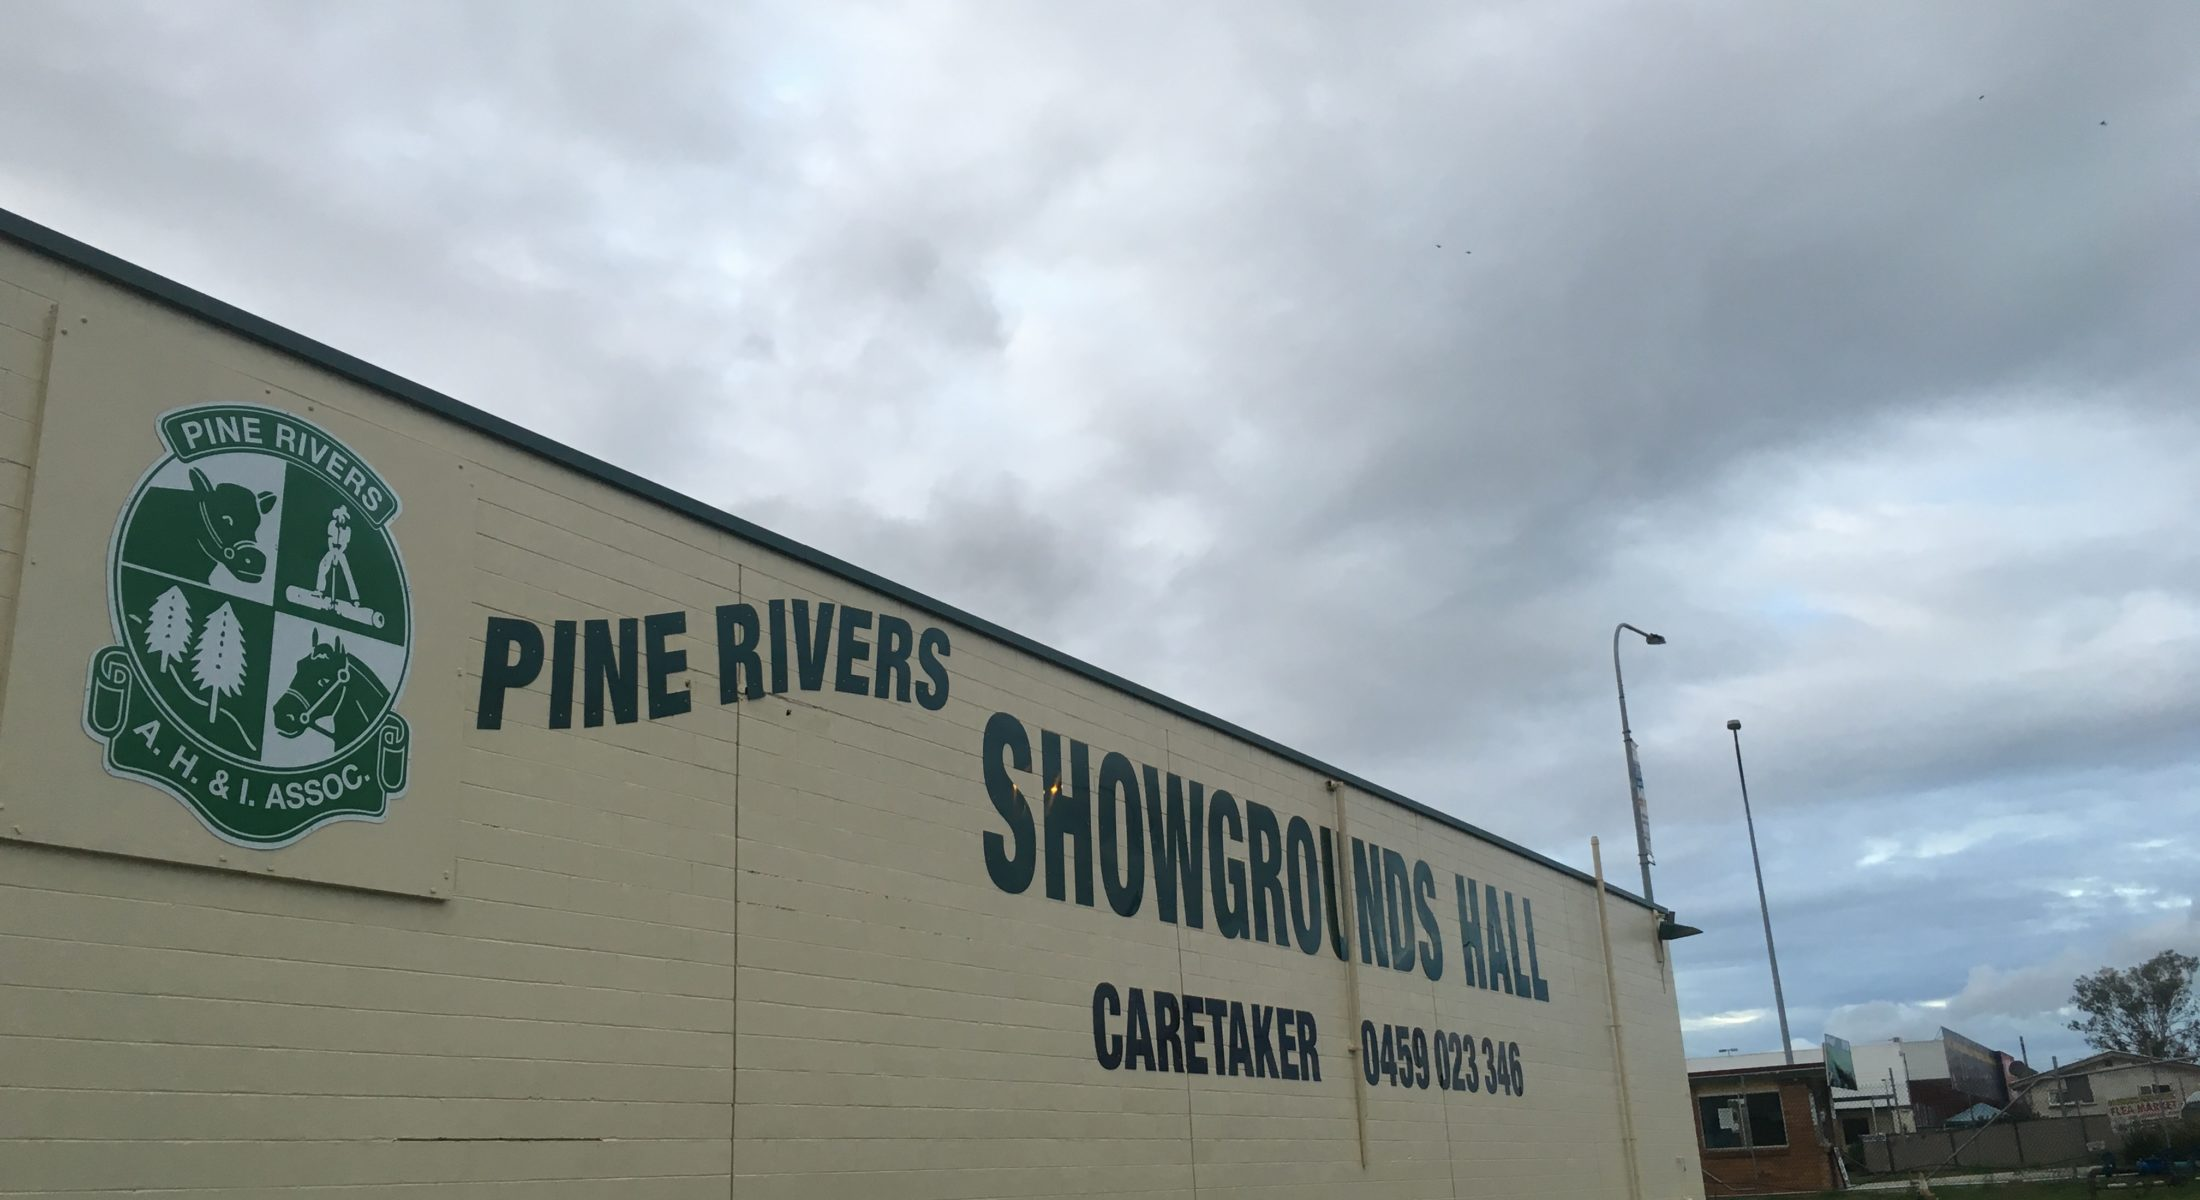 Camping And Caravan Park Pine Rivers Showground Lawnton Strathpine Near Brisbane Showgrounds Caretaker